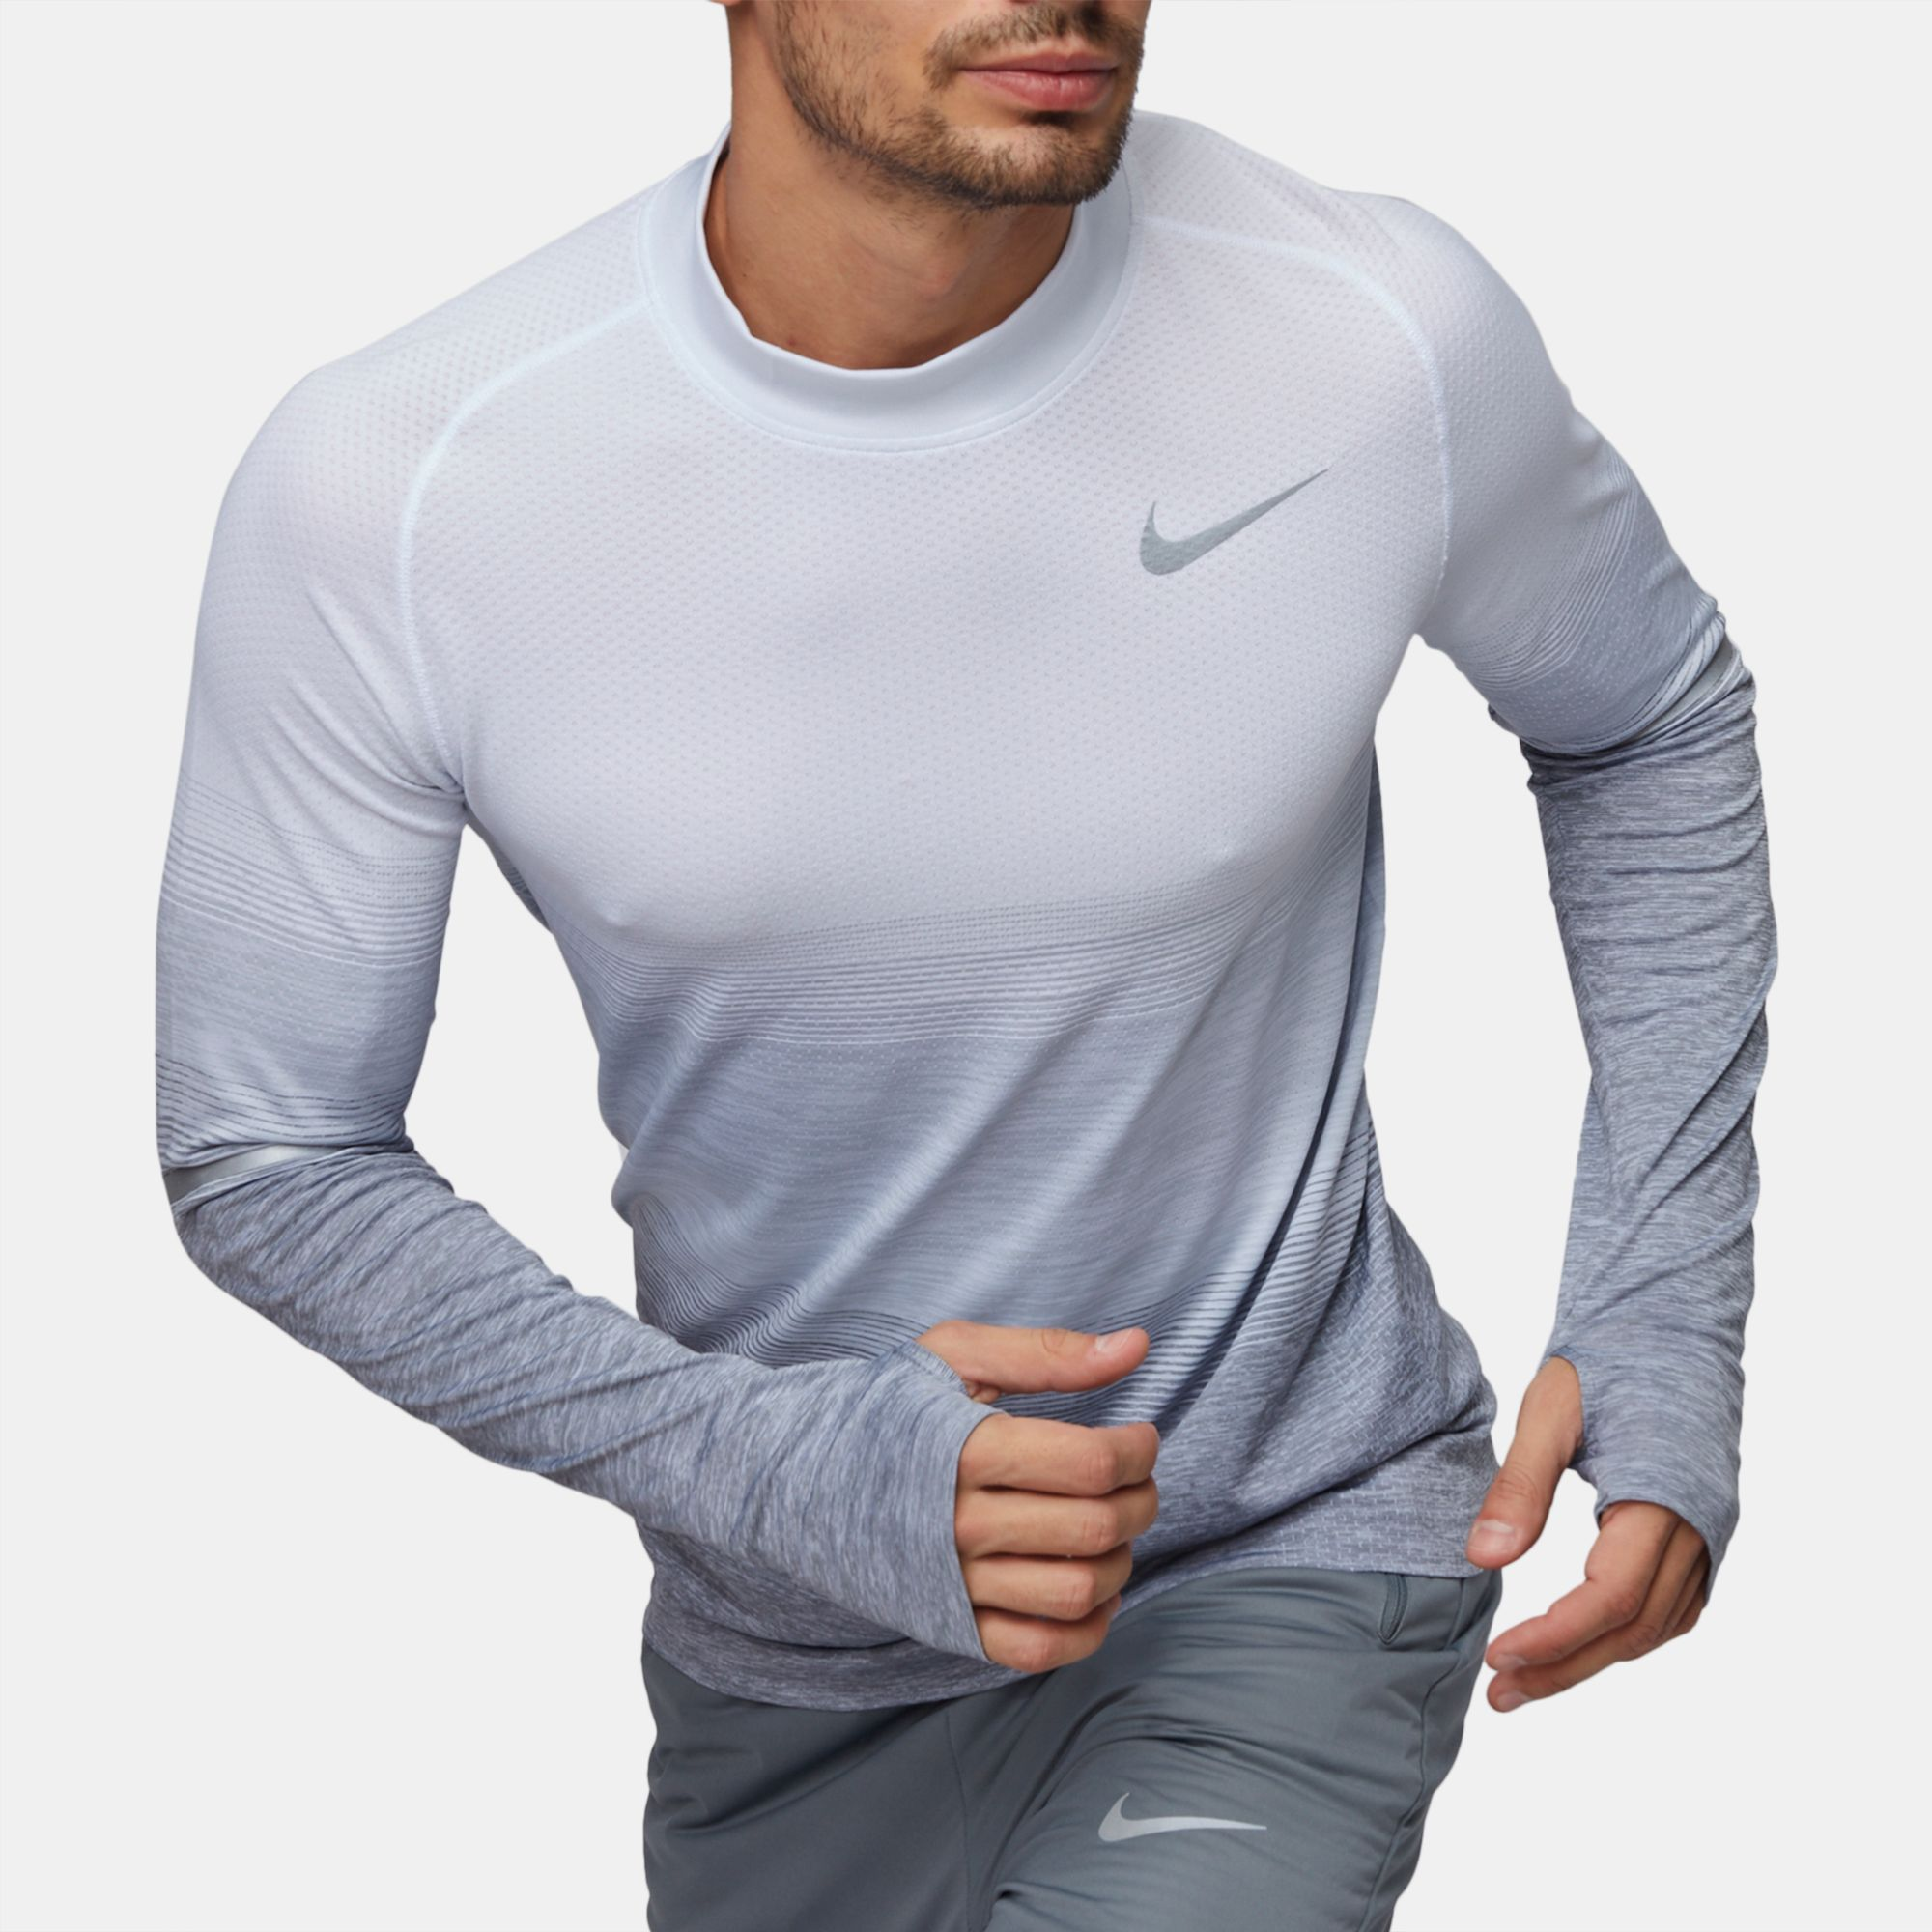 9fad8cf1 Shop Grey Nike Dri-FIT Knit Long Sleeve T-Shirt for Mens by Nike - 7 ...